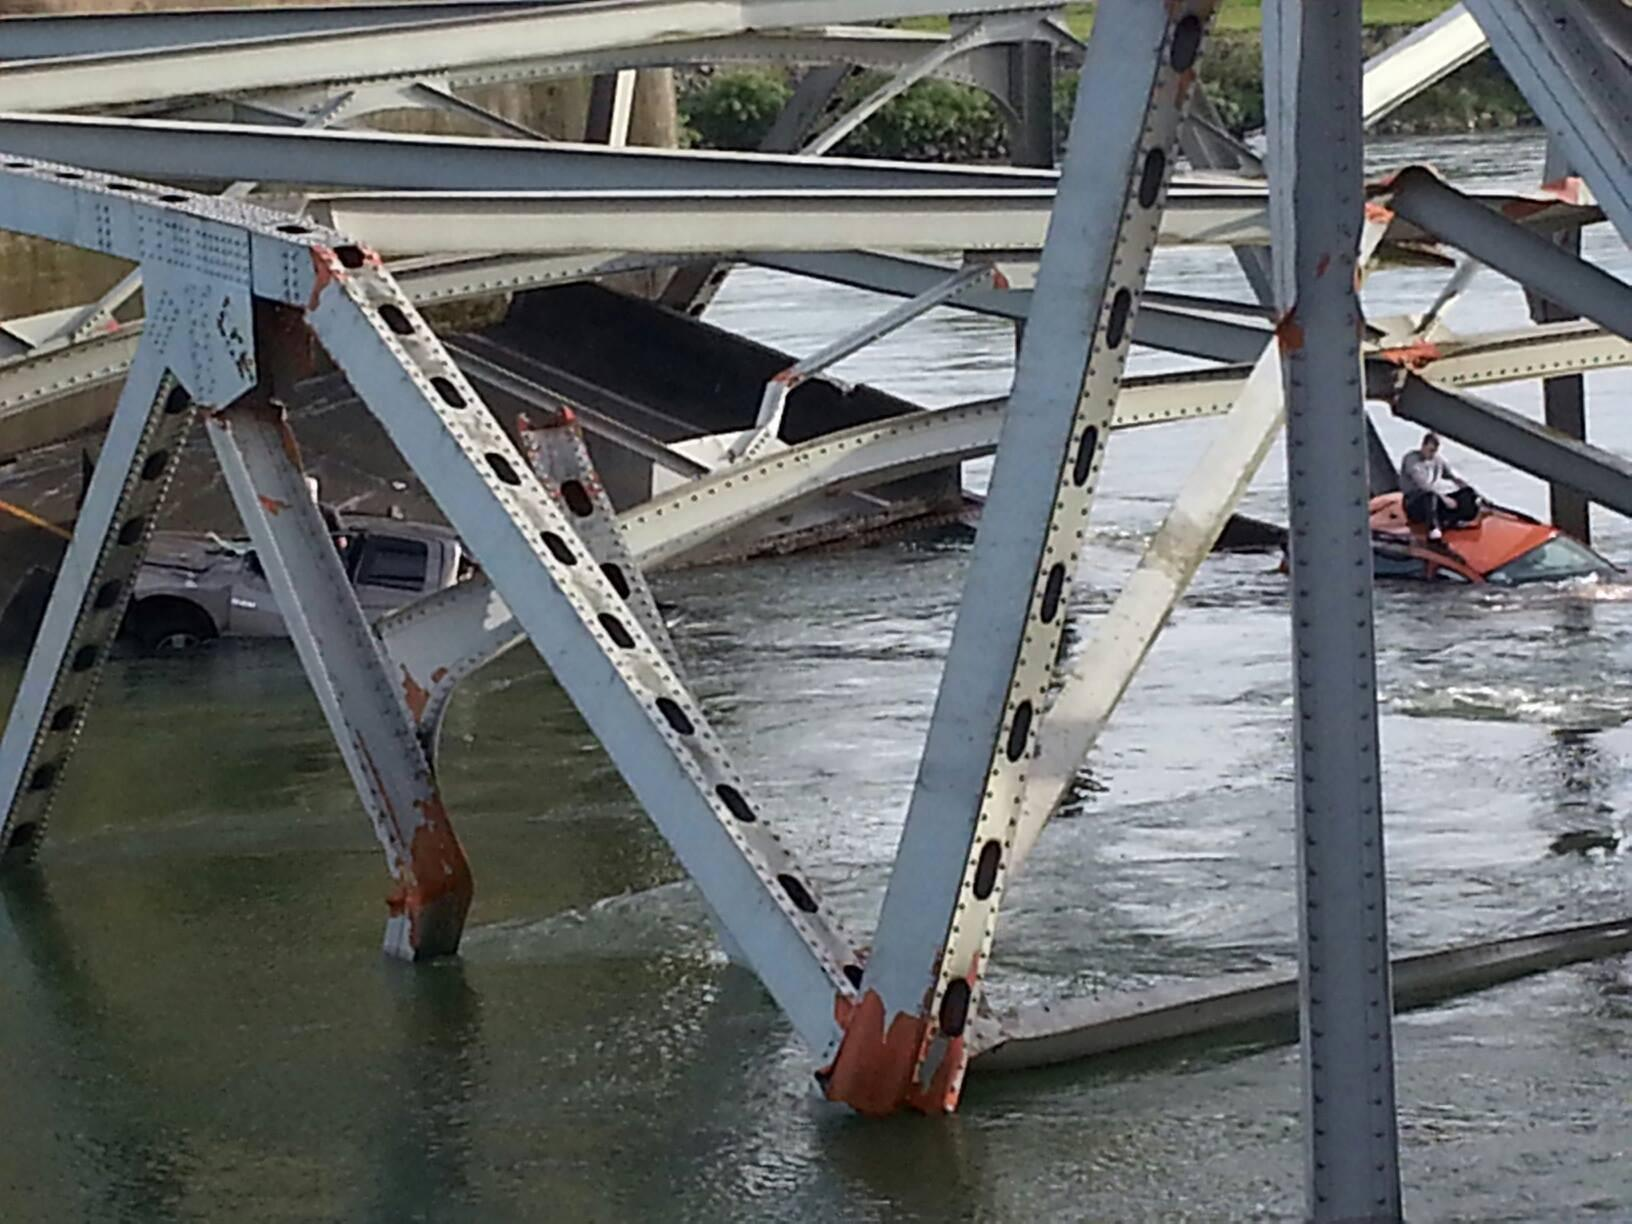 Photo: Man takes refuge on roof of car after bridge collapses in Washington - @King5Seattle